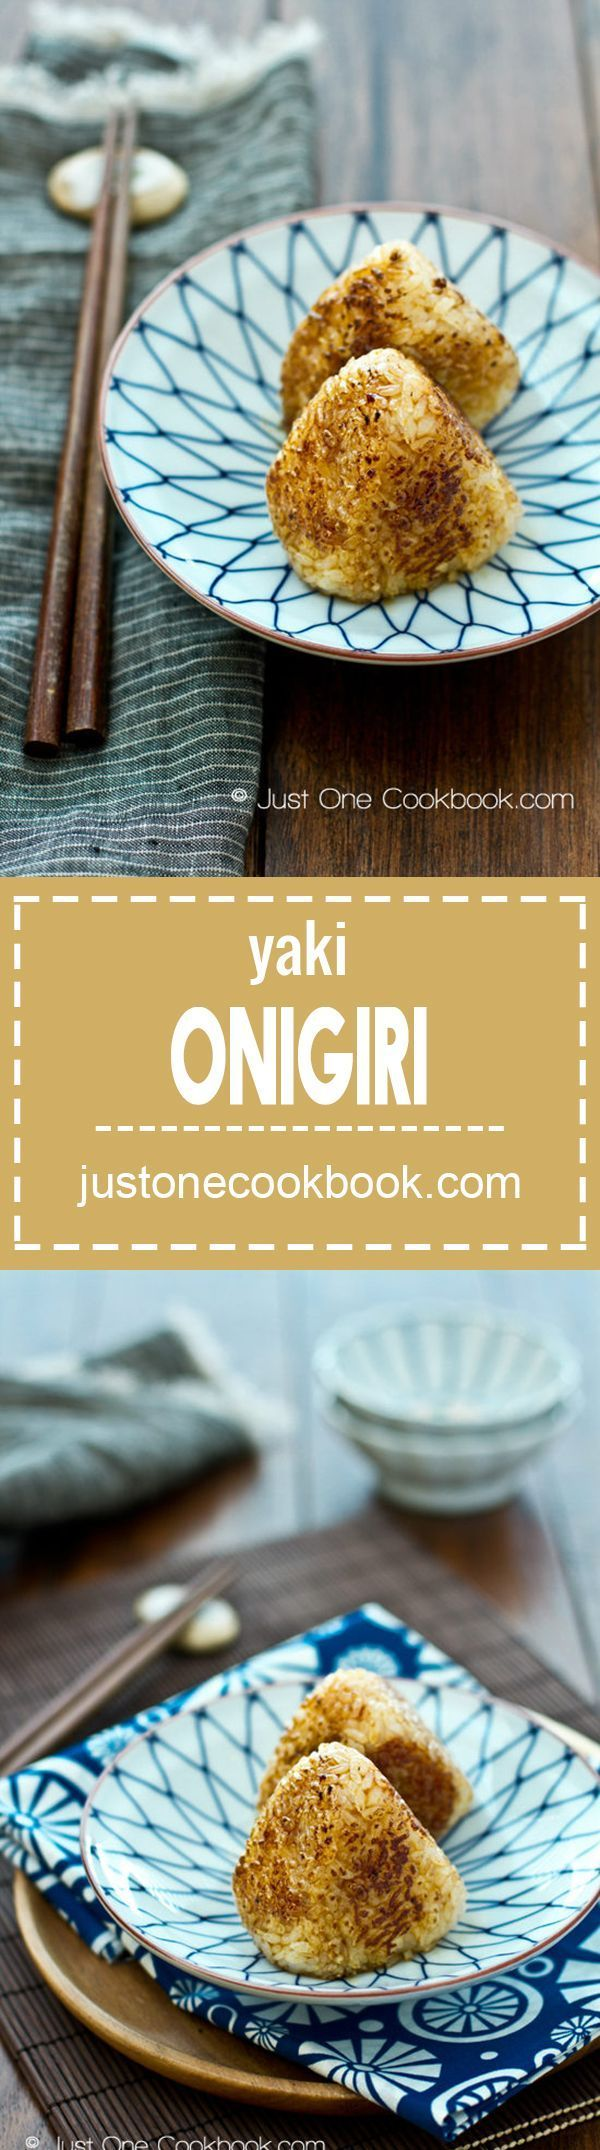 Yaki Onigiri (Grilled Rice Ball) 焼きおにぎり | Easy Japanese Recipes at JustOneCookbook.com